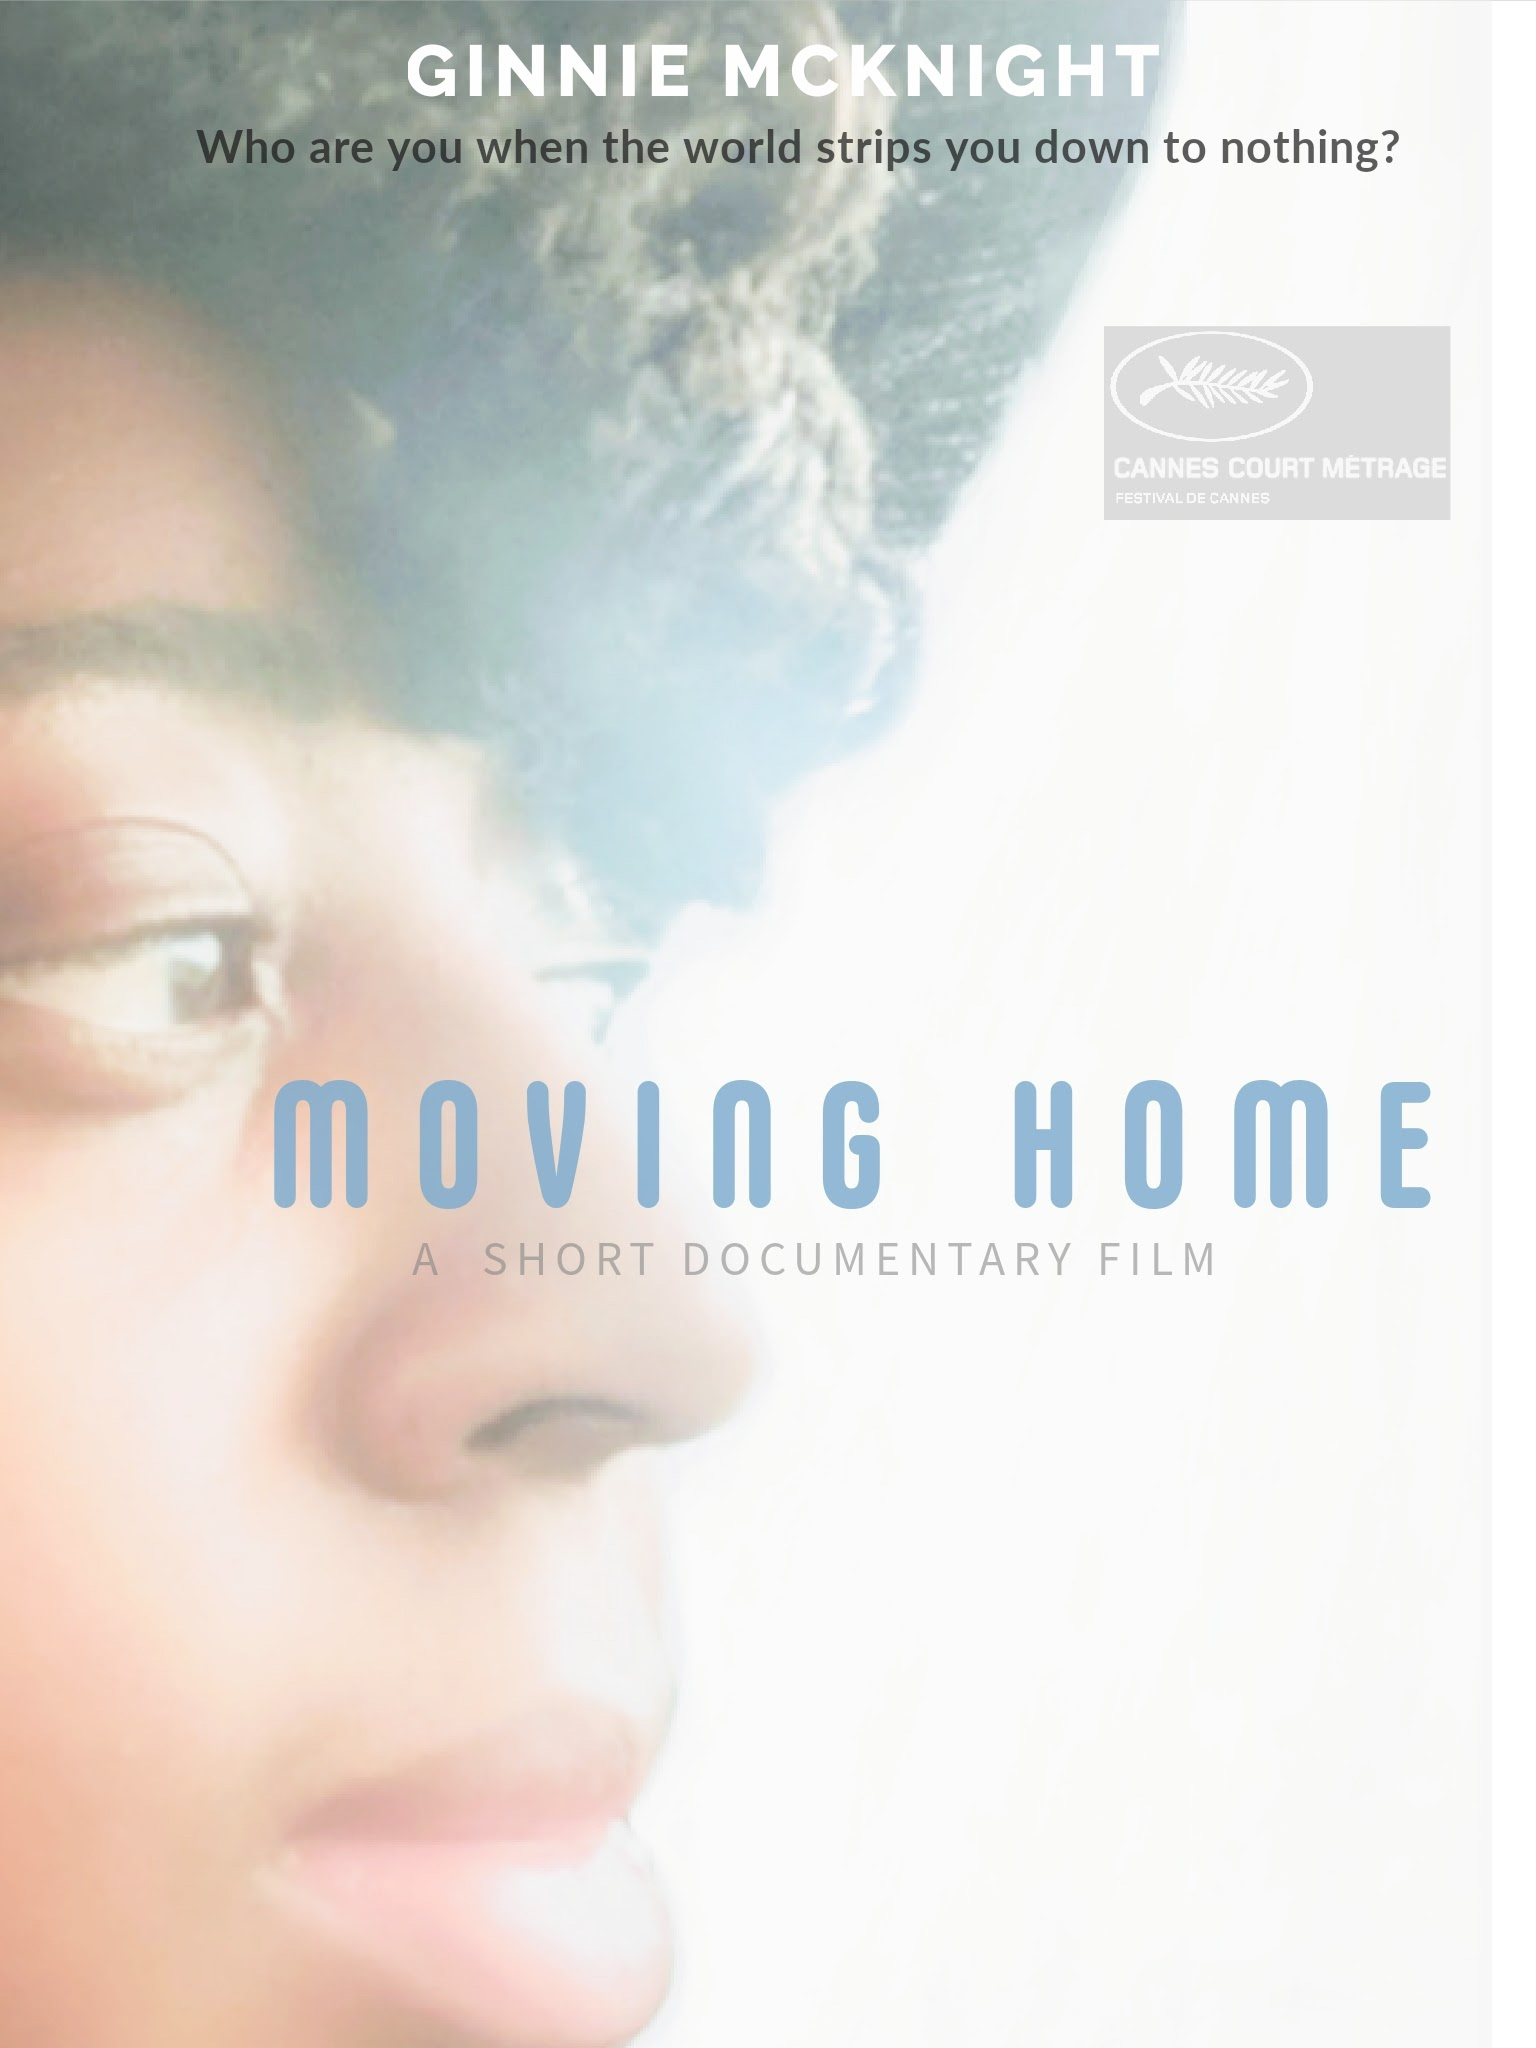 Moving Home by Ginnie McKnight (2018)